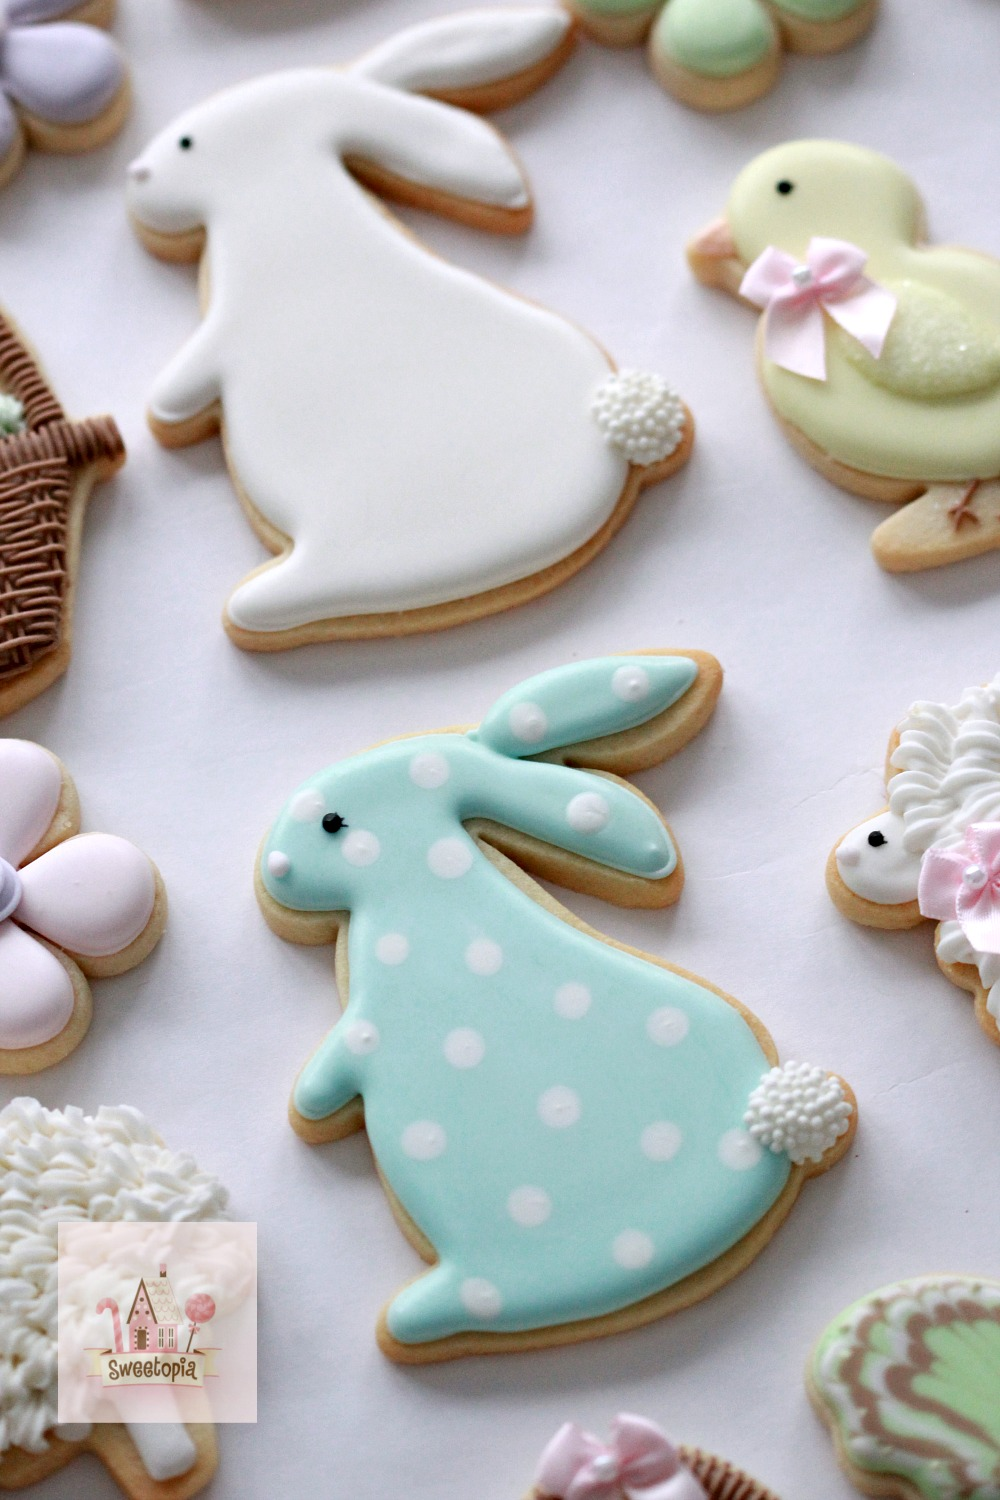 Hosting A Cookie Decorating Party Easter Cookies Sweetopia